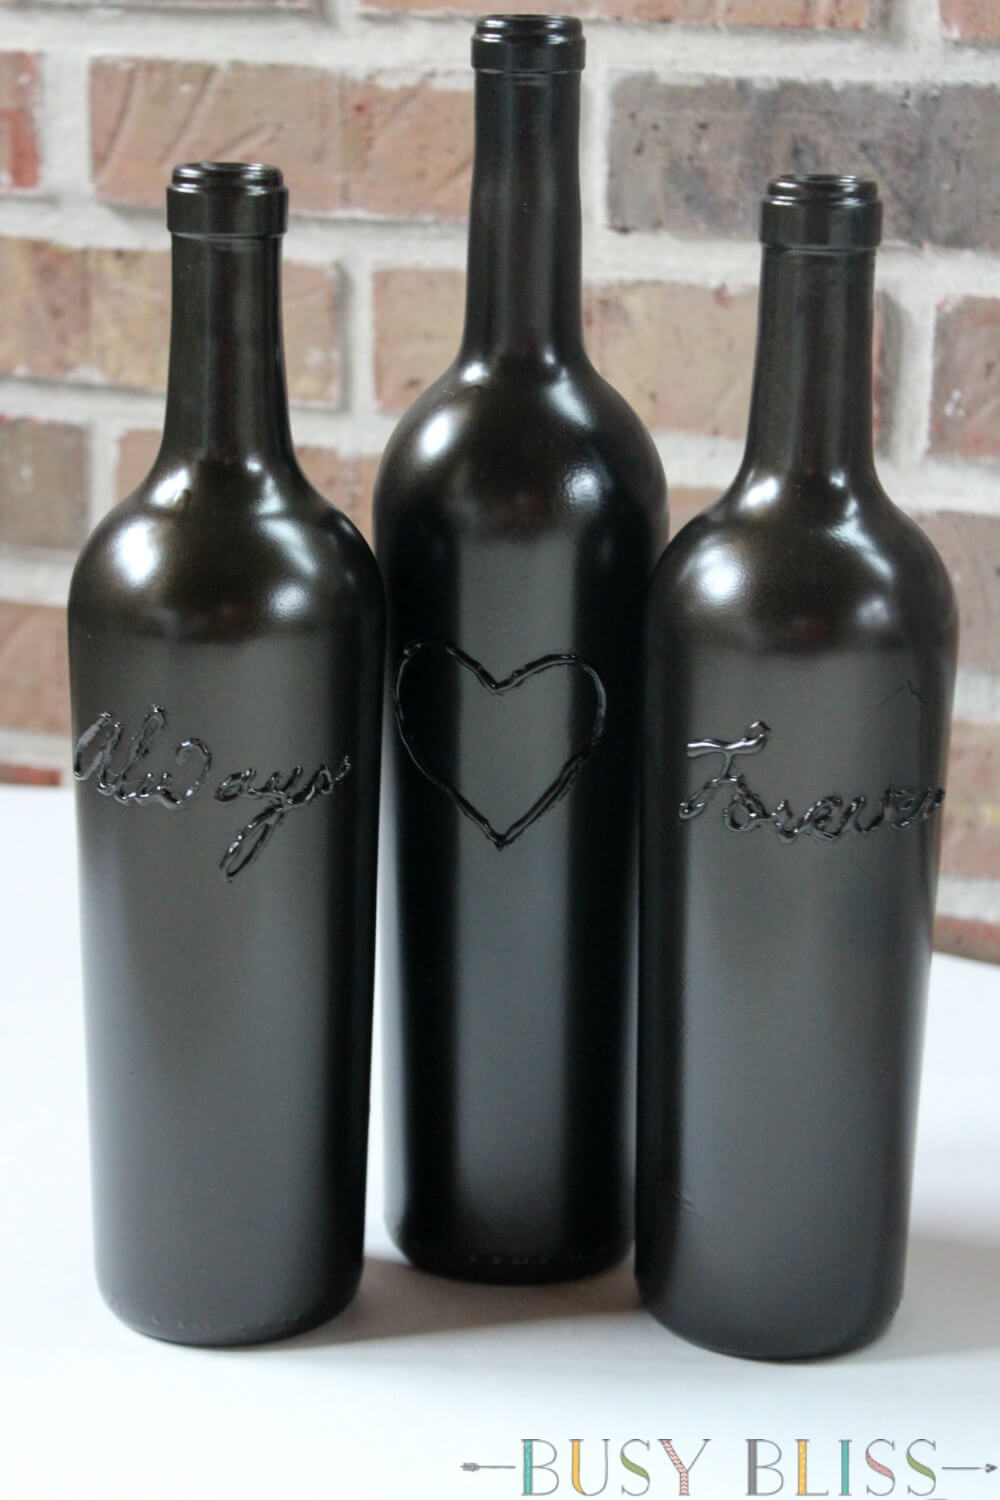 The Simple Way To Make Decorative Wine Bottles  Busy Bliss. Nautical Decorating. Decorative Stones For Vases. Funny Door Decorations. Home Decorating Magazines. Wood And Metal Wall Decor. Sliding Doors Room Dividers. Wall Decor For Dining Room. Checkered Flag Decorations